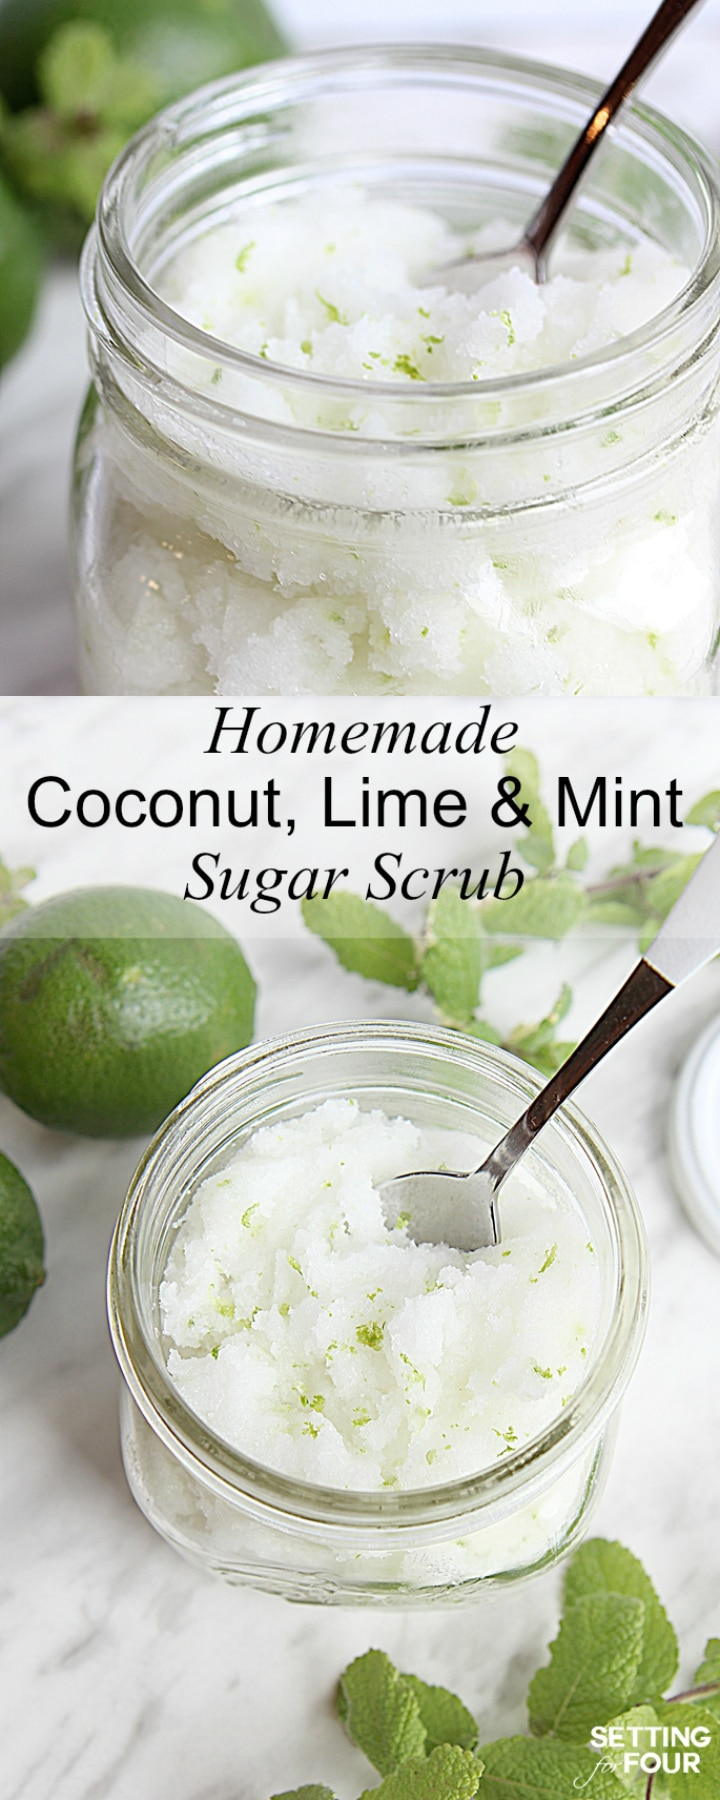 diy-lime-mint-sugar-scrub